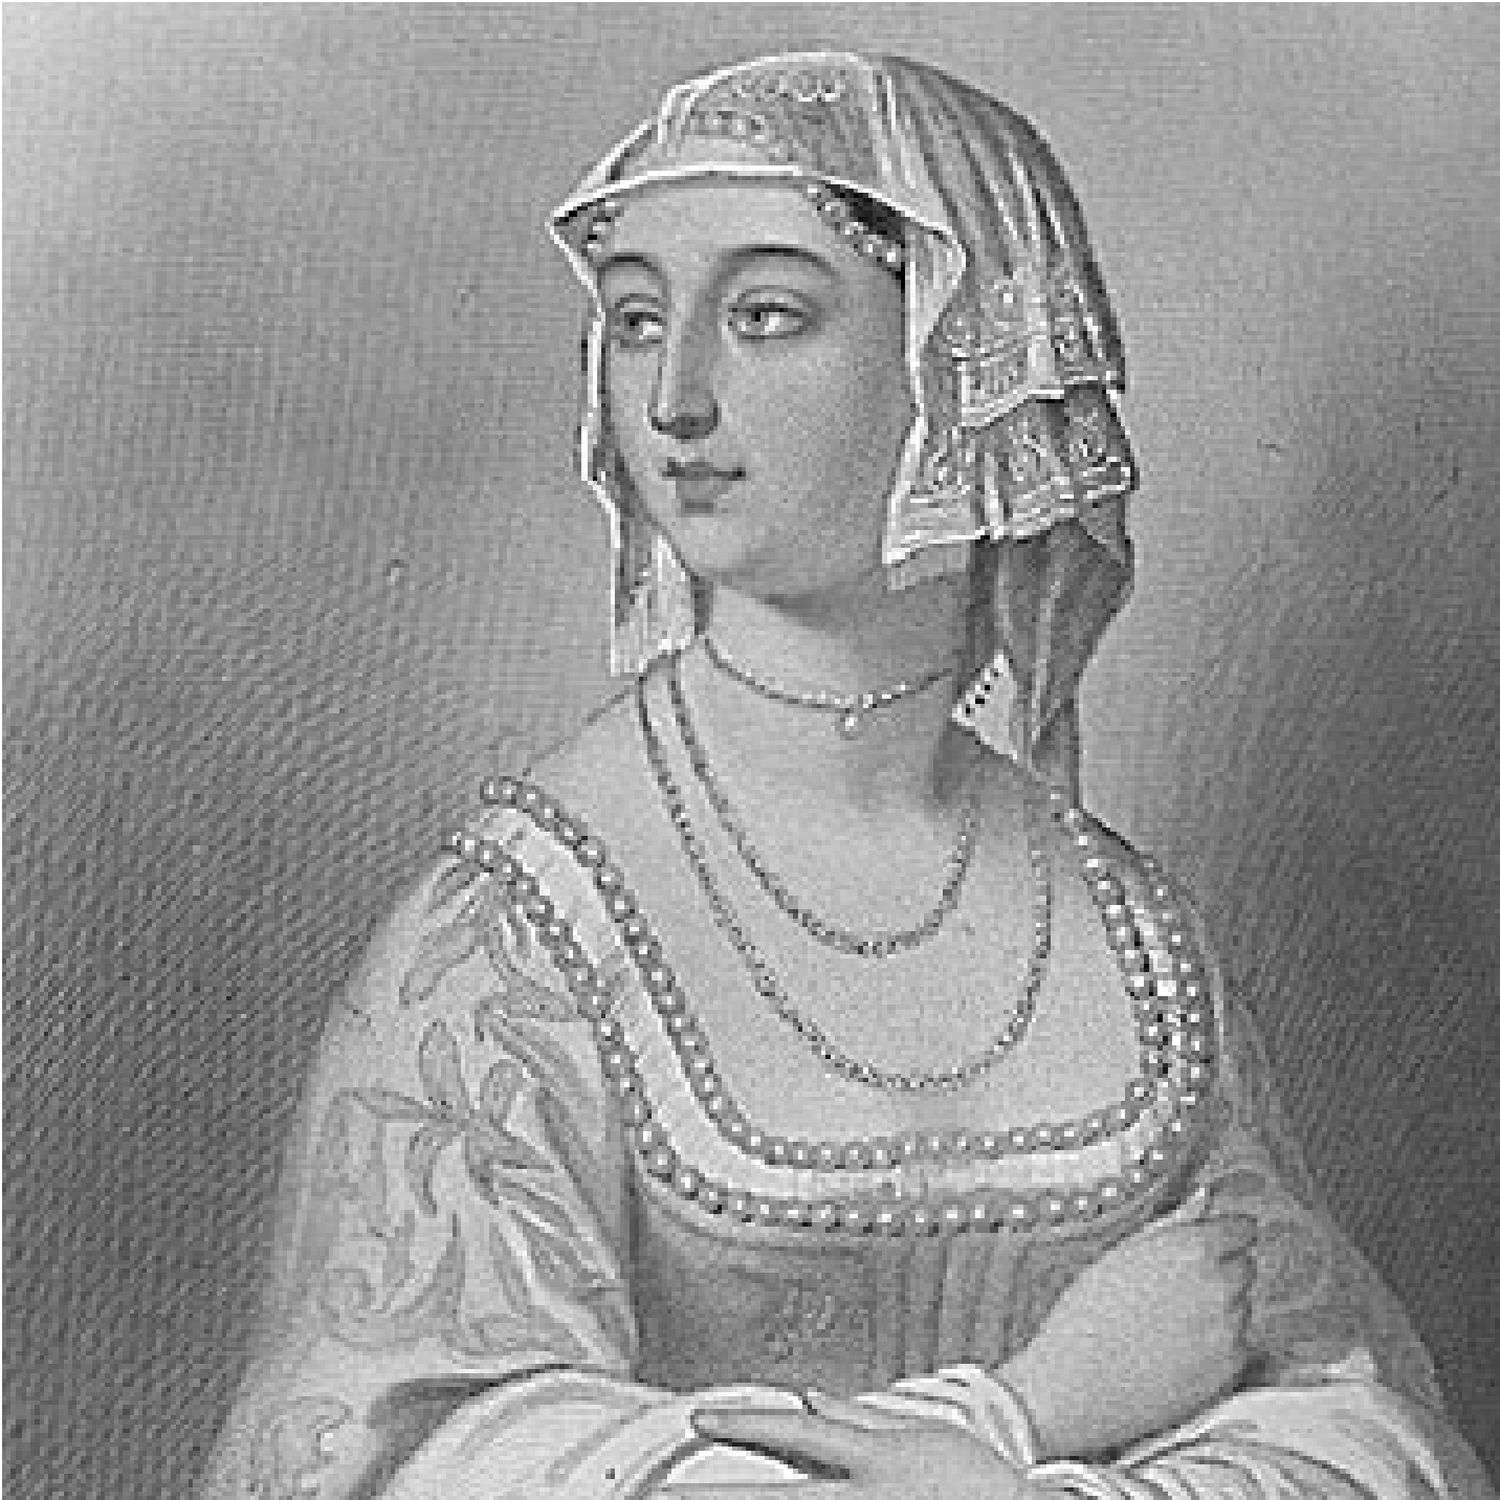 29 - Margaret of Anjou (3) - The Second She-Wolf